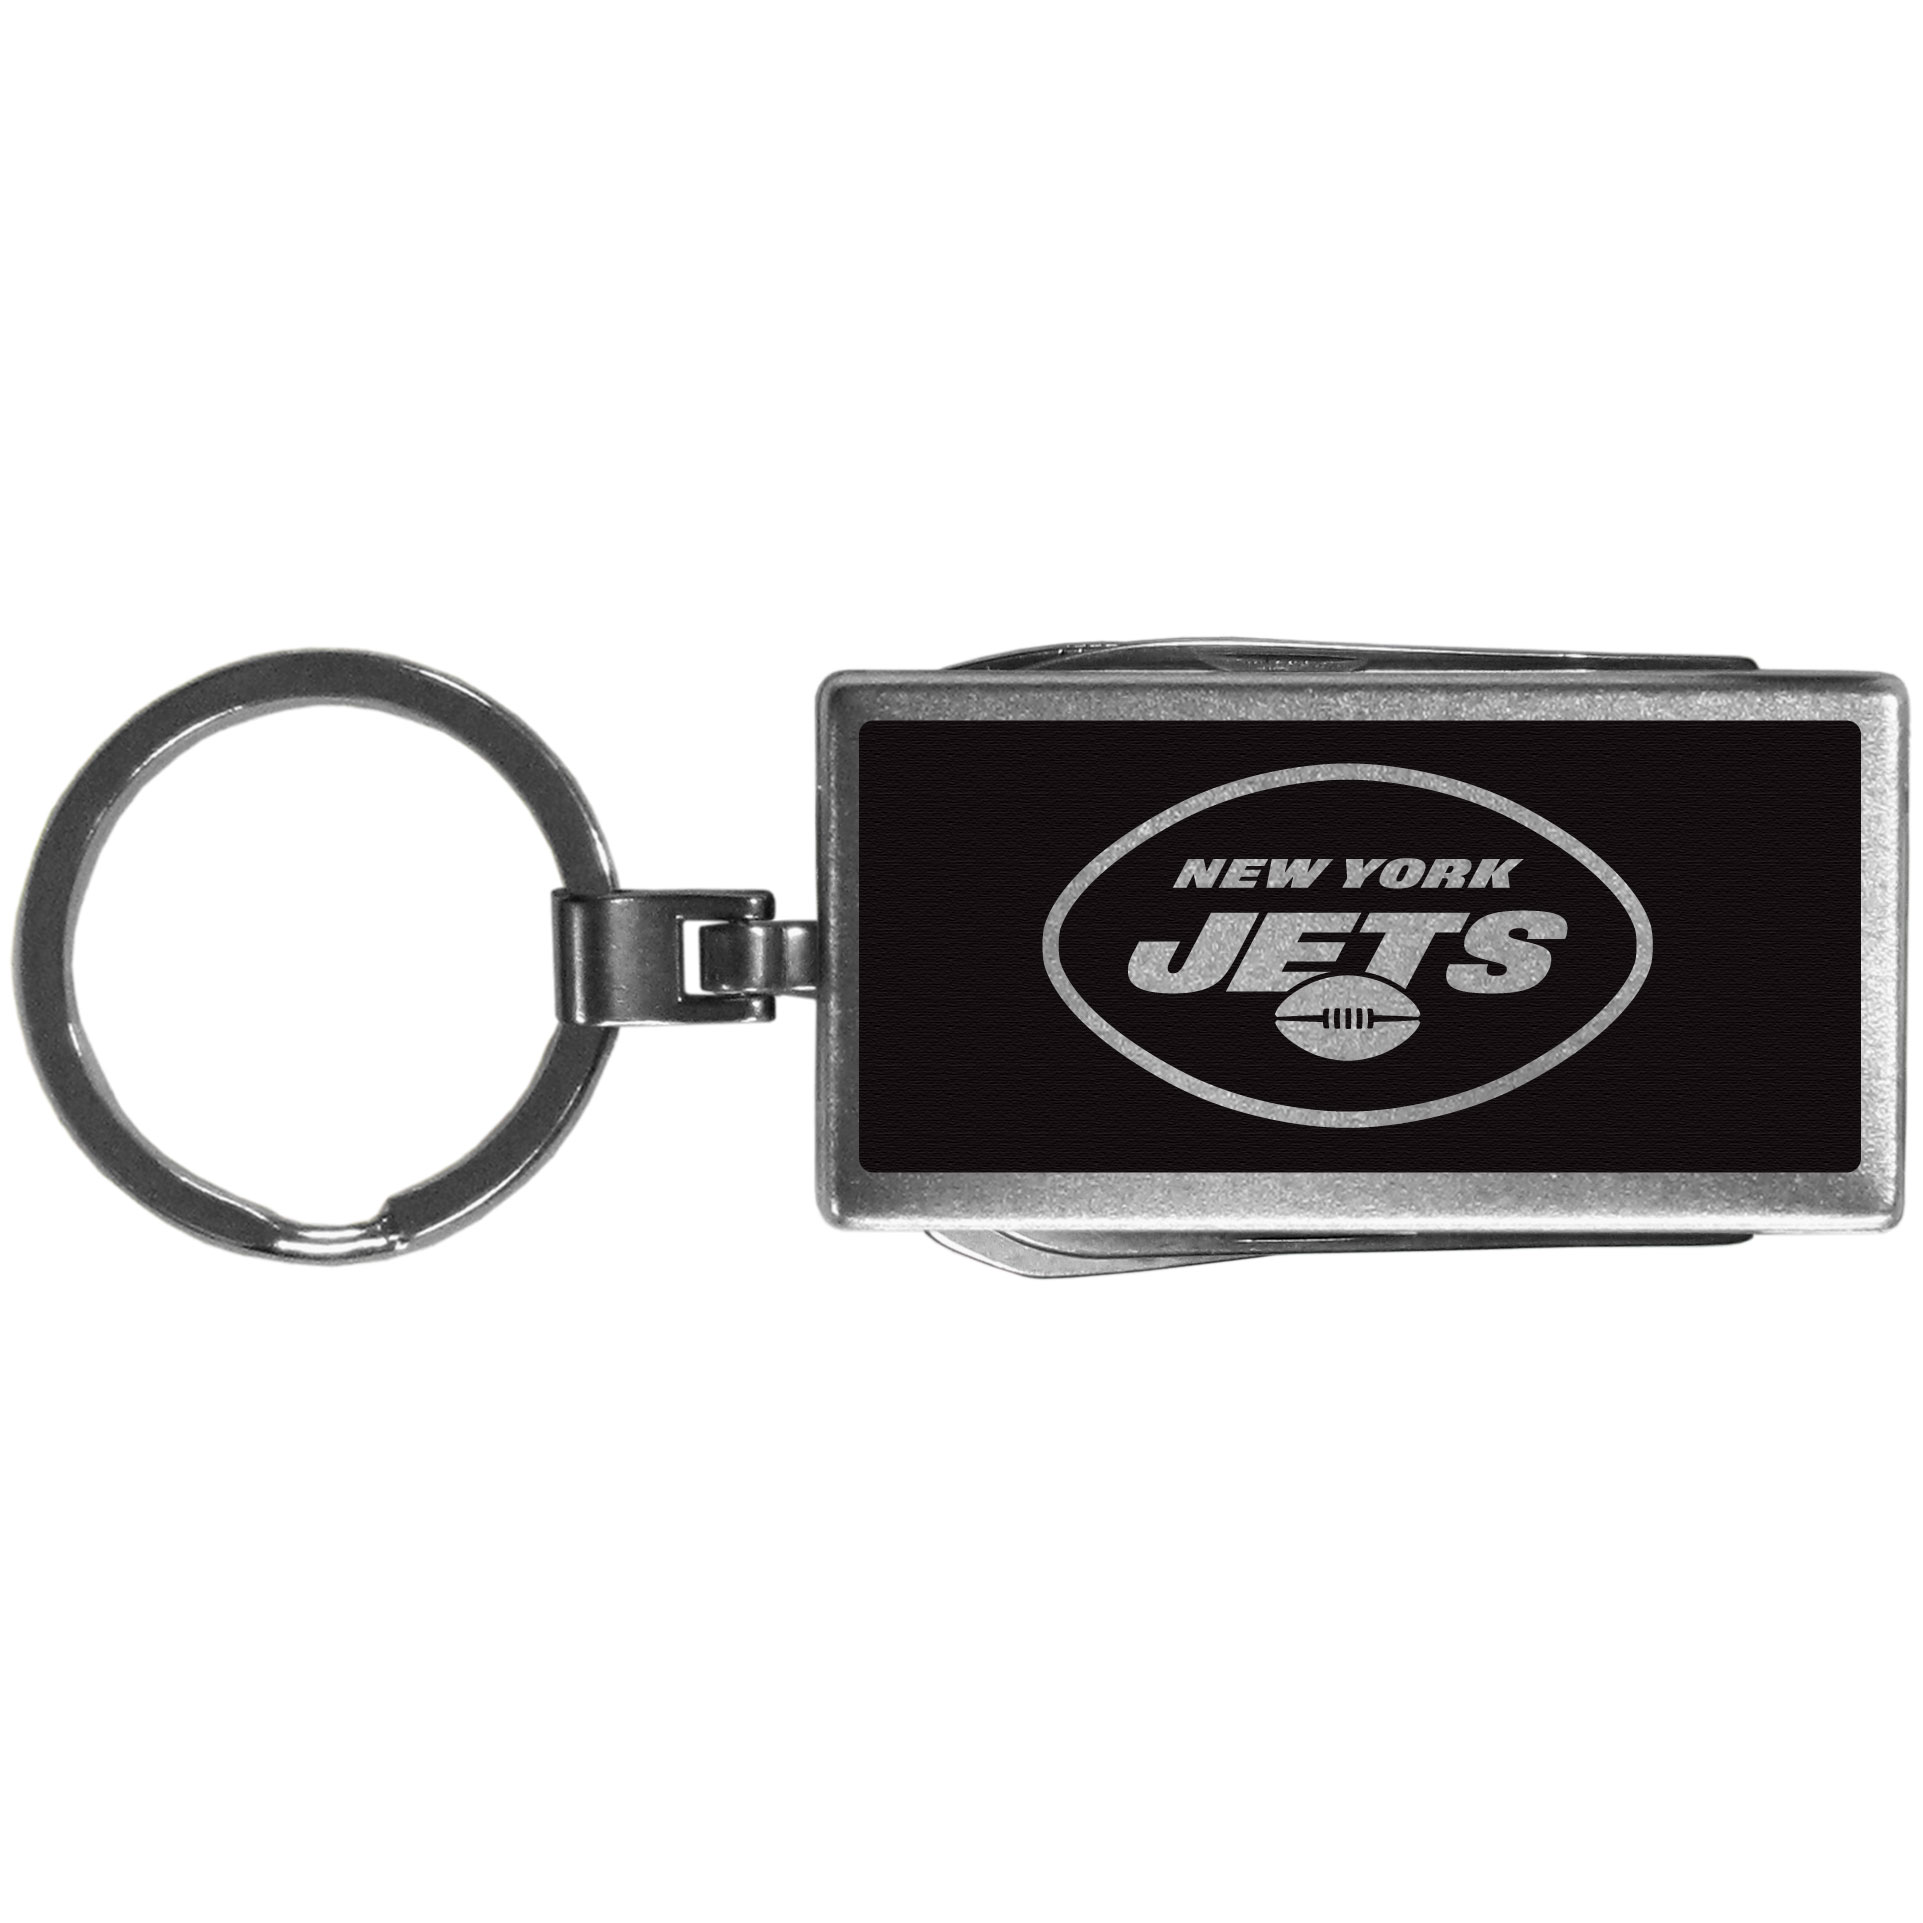 New York Jets Multi-tool Key Chain, Black - Be the hero at the tailgate, camping, or on a Friday night with your New York Jets Multi-Tool Keychain which comes complete with bottle opener, scissors, knife, nail file and screw driver. Be it opening a package or a beverage Siskiyou's Multi-Tool Keychain goes wherever your keys do. The keychain hangs at 4 inches long when closed.